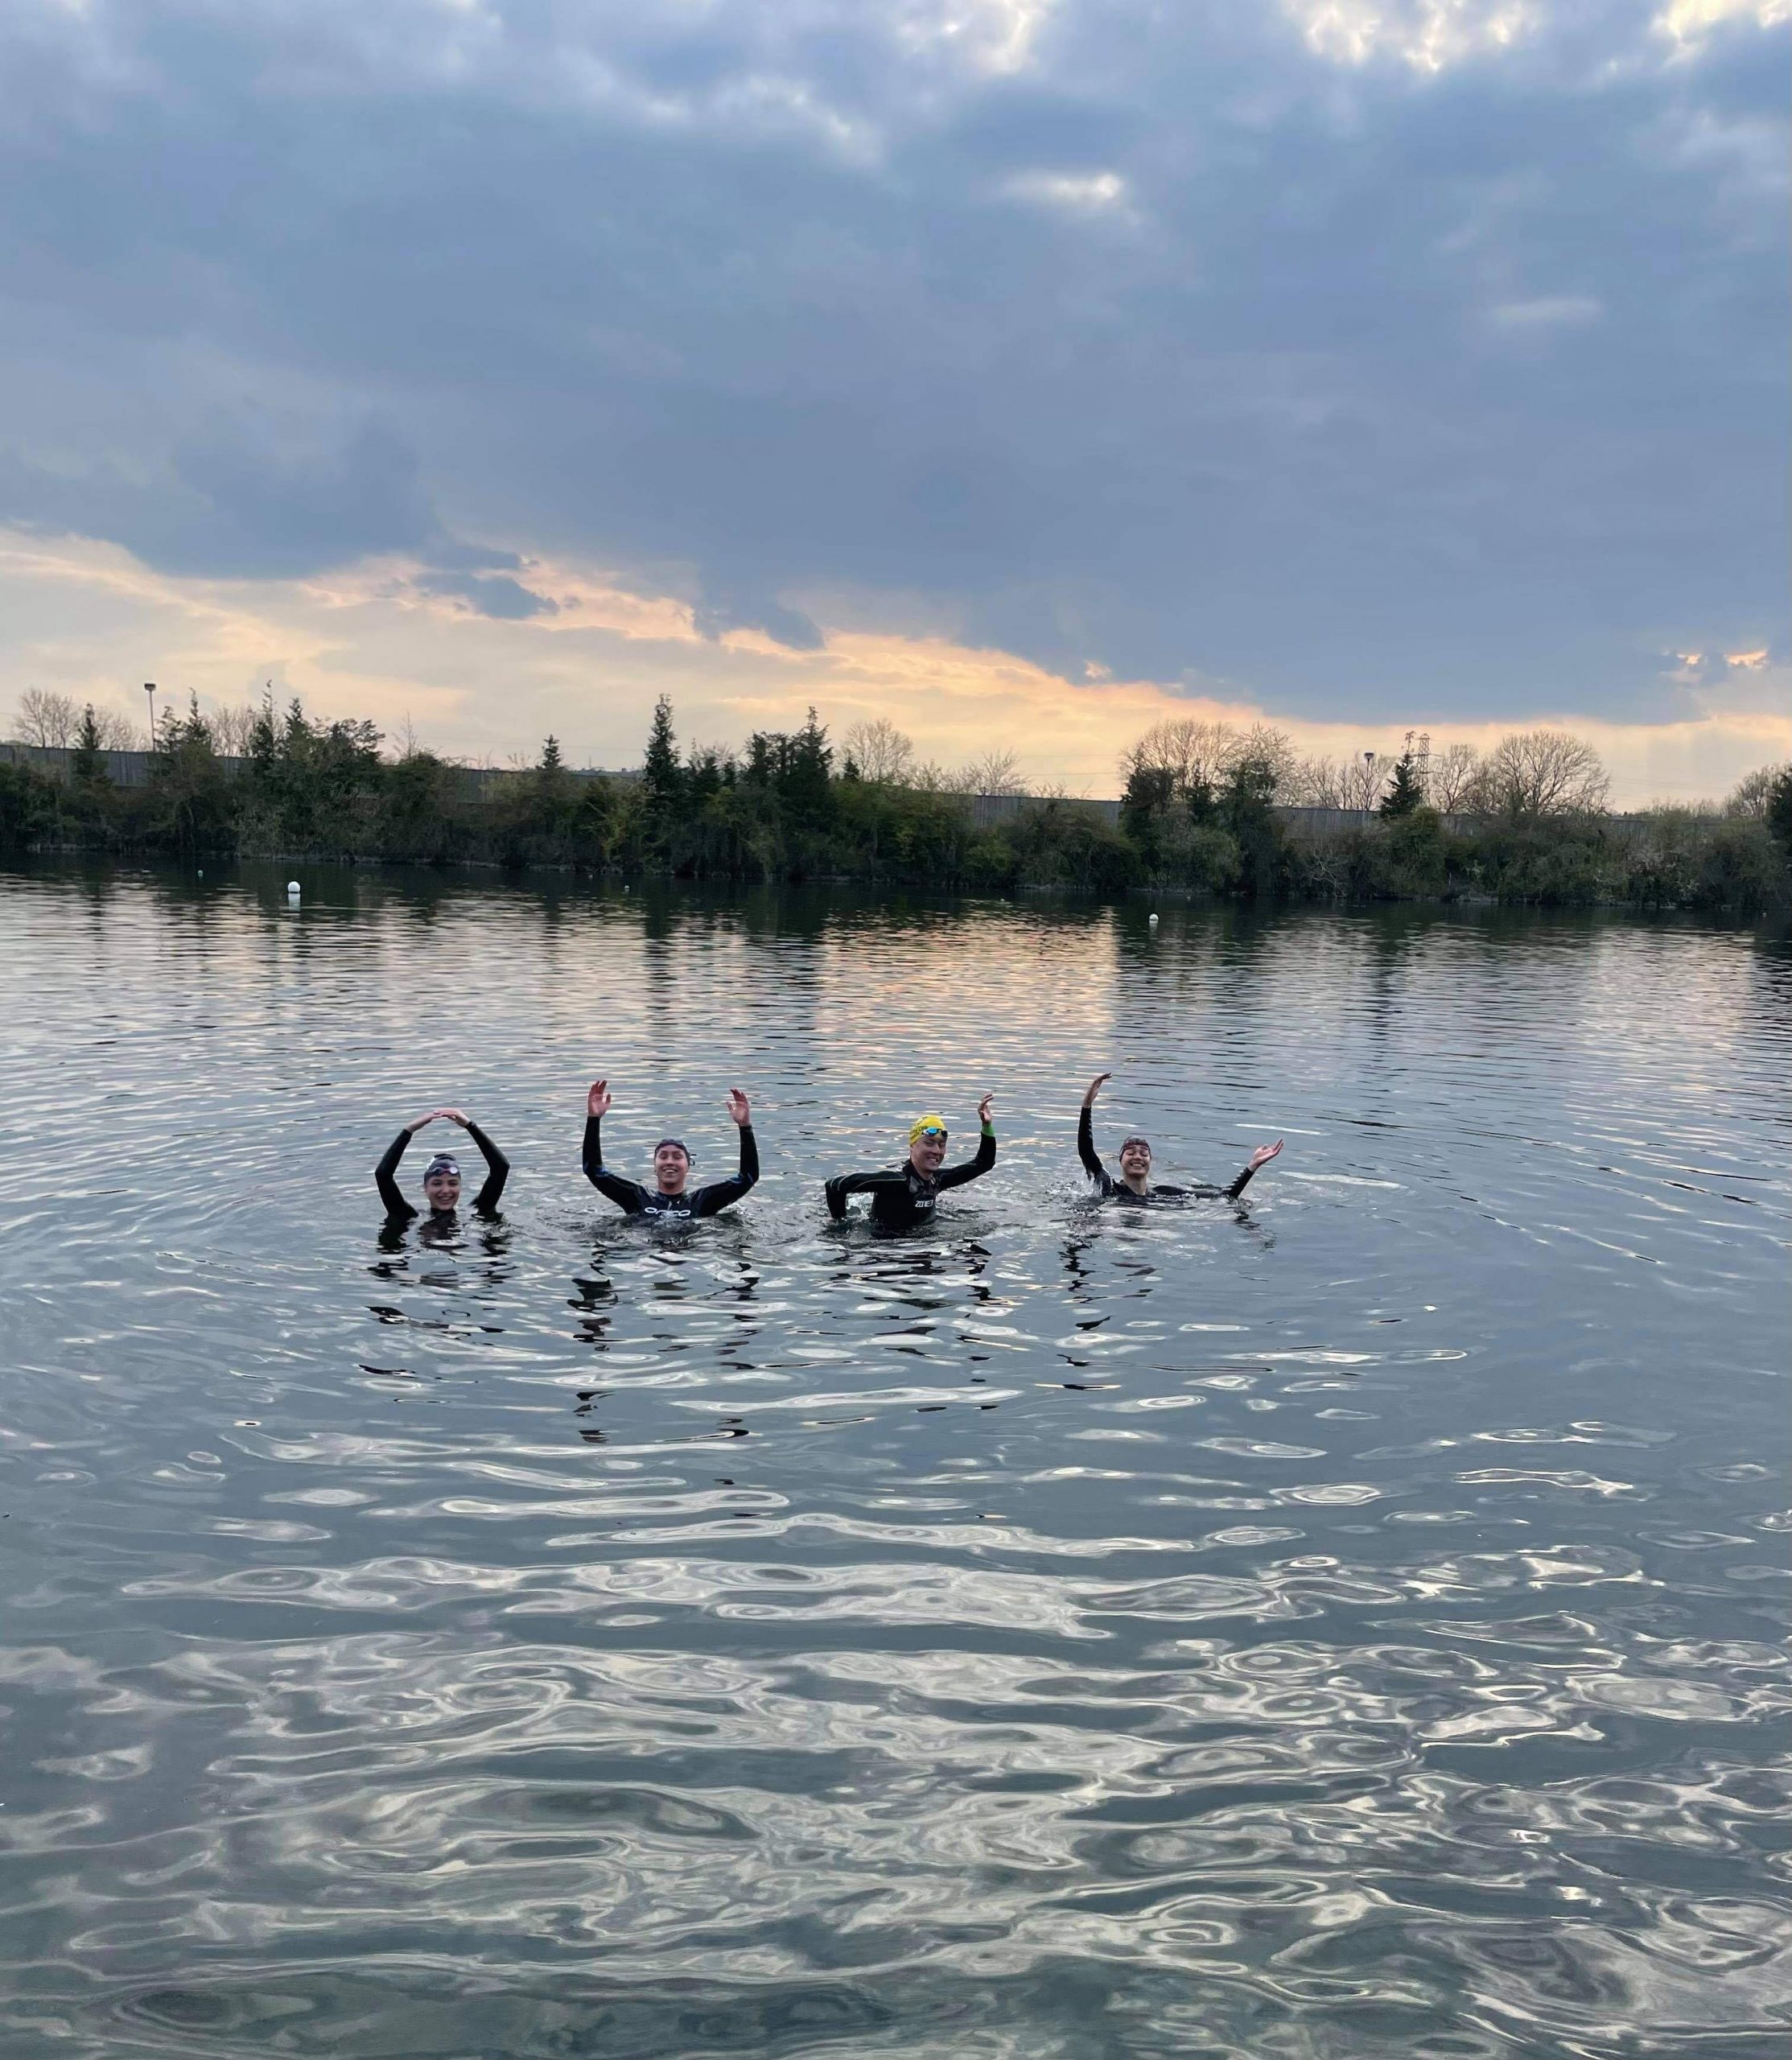 Four of the team's swimmers can be seen making the OUSC signs in the water during a training session